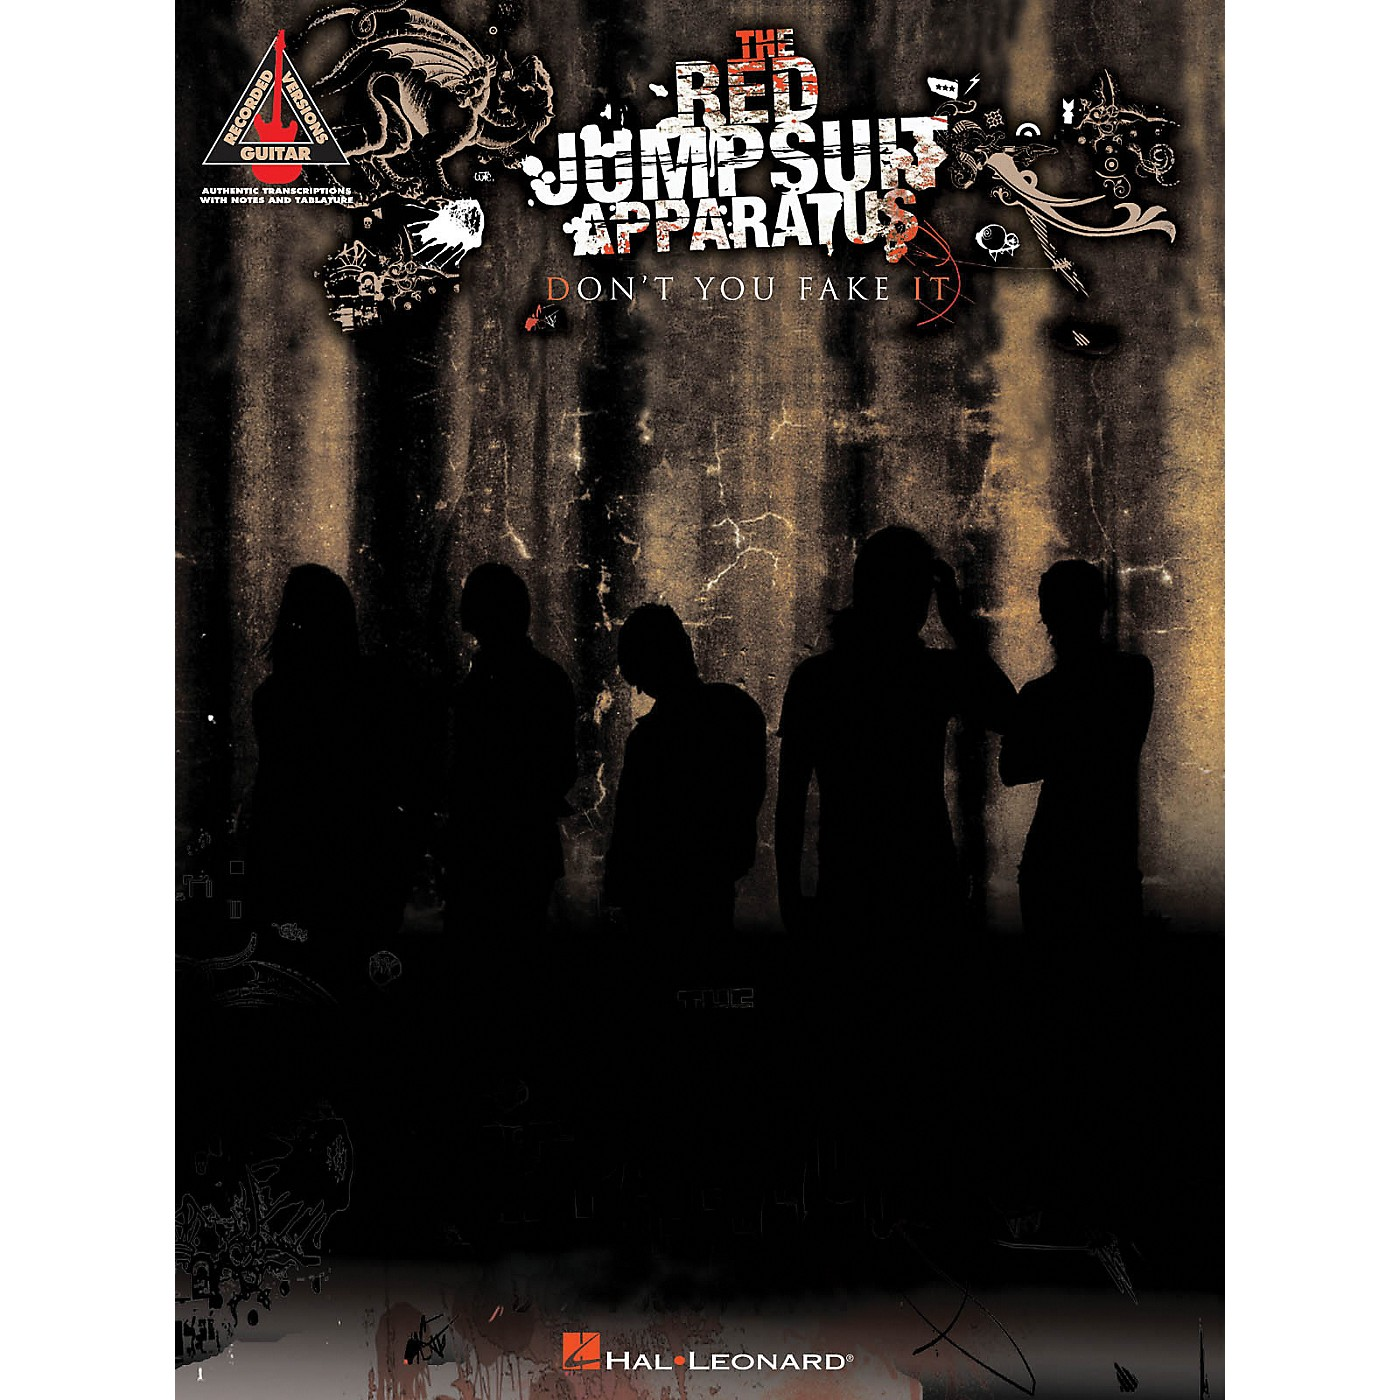 Hal Leonard The Red Jumpsuit Apparatus - Don't You Fake It Guitar Tab Songbook thumbnail